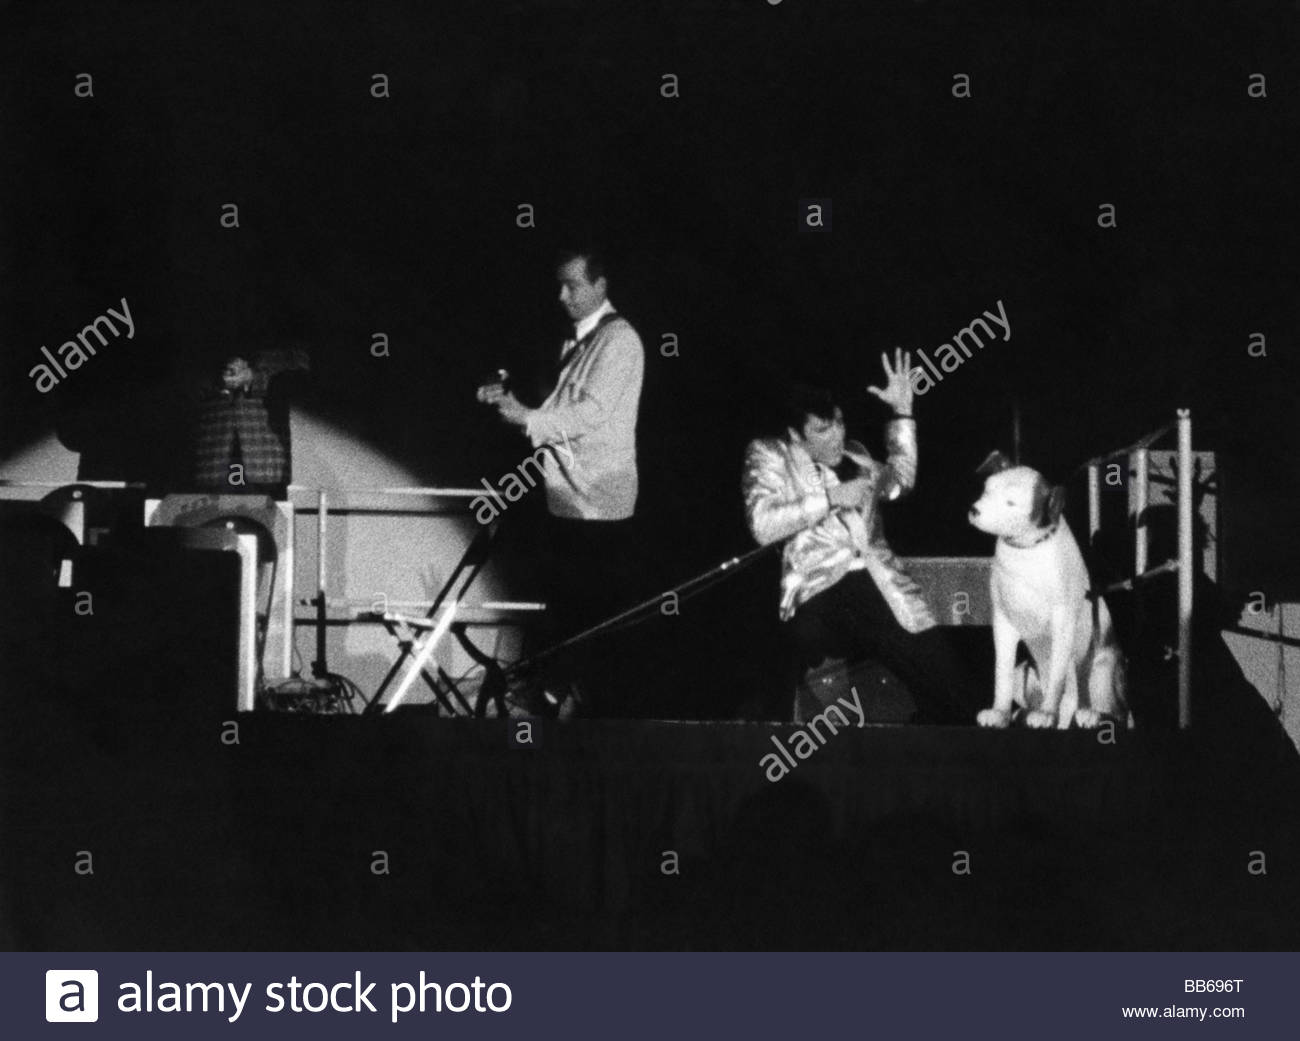 Presley, Elvis, 8.1.1935 - 16.8.1977, American singer and actor, performance, circa 1957, music, musician, stage, - Stock Image